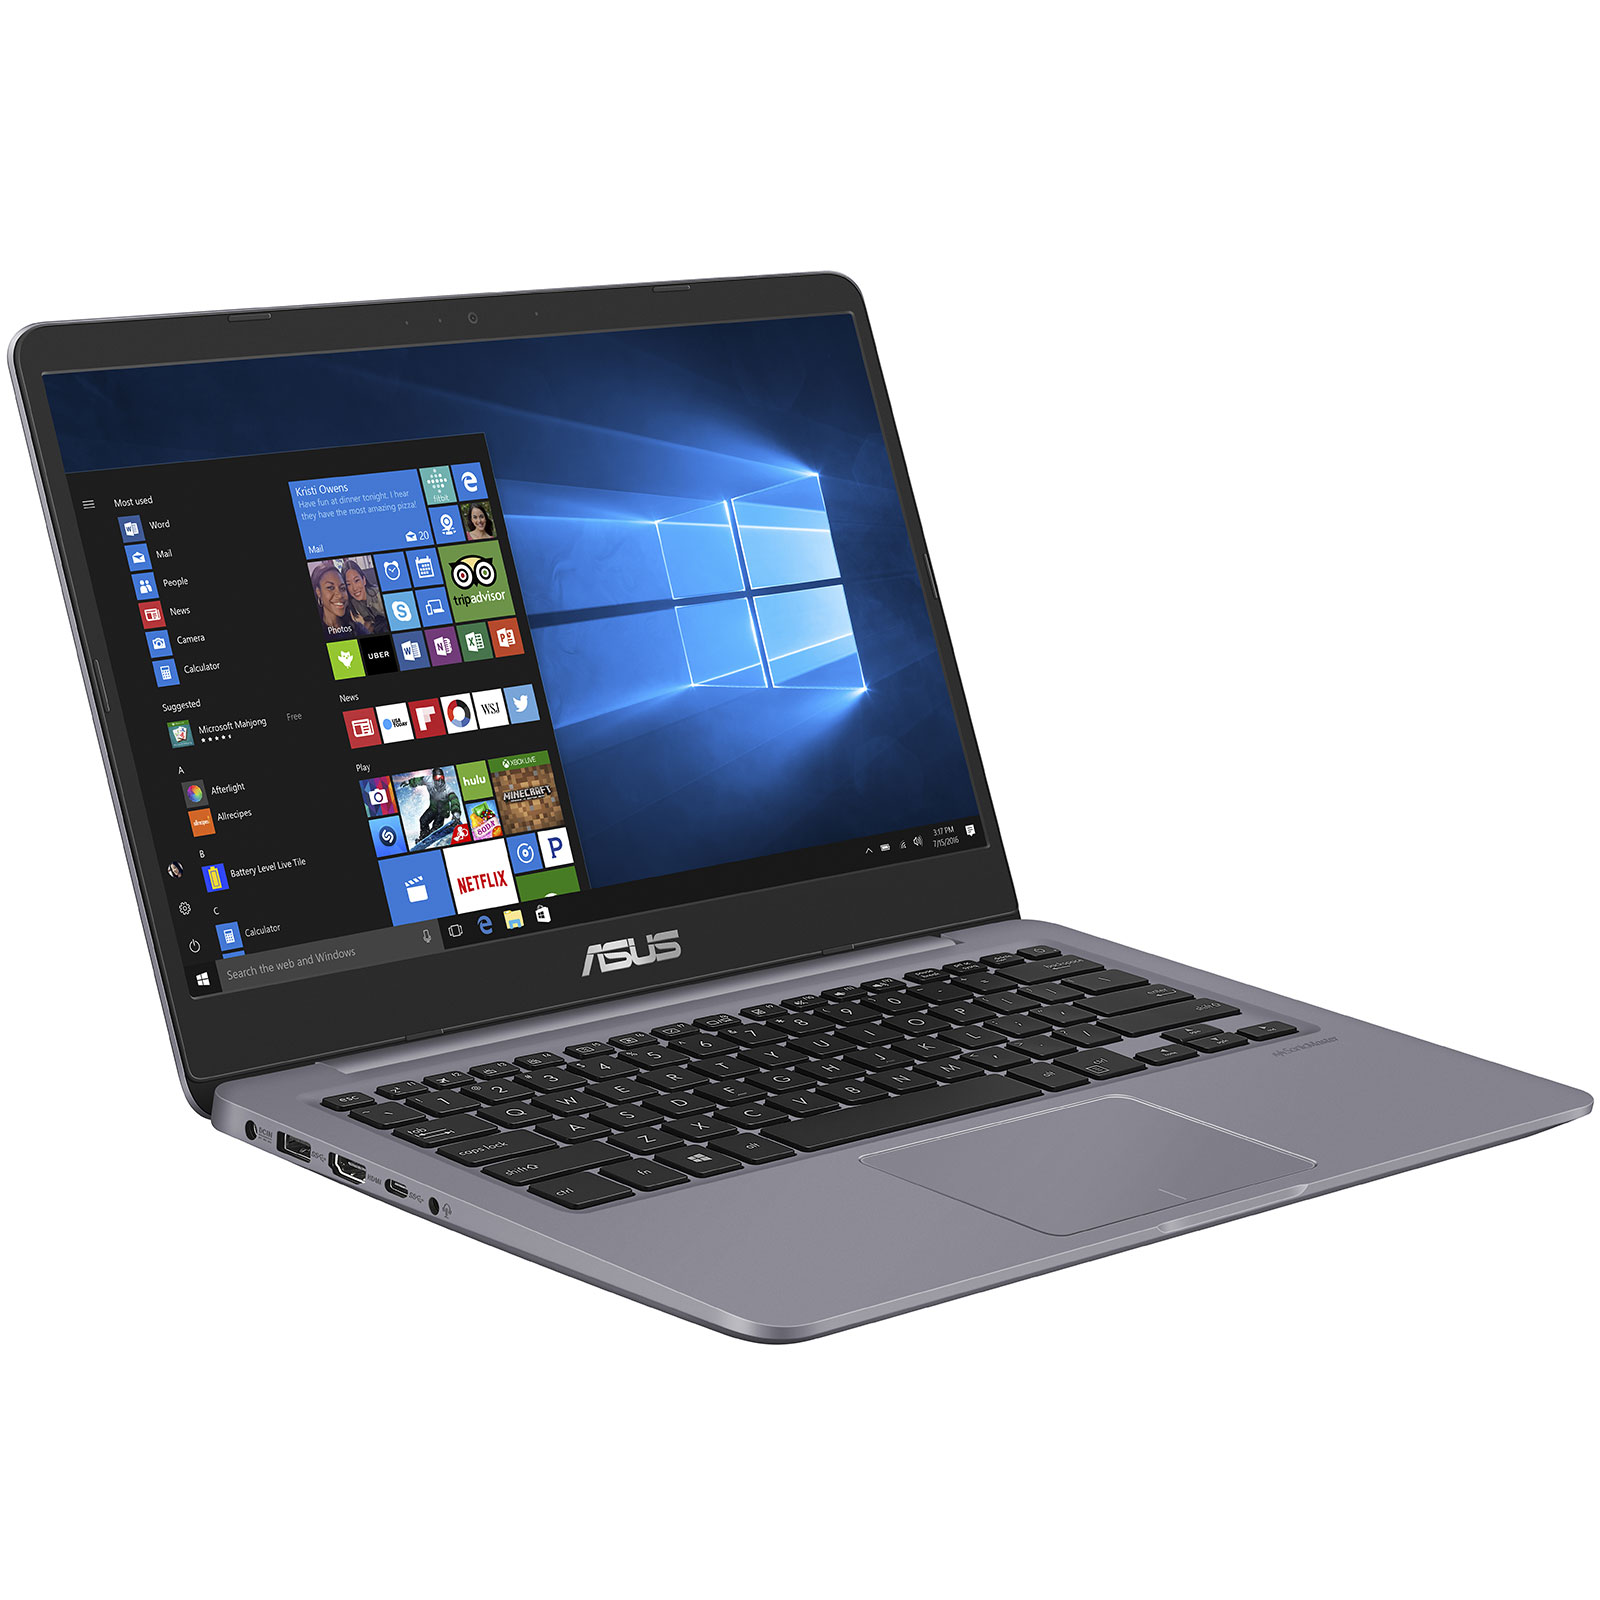 asus vivobook s14 s410un eb078t pc portable asus sur. Black Bedroom Furniture Sets. Home Design Ideas